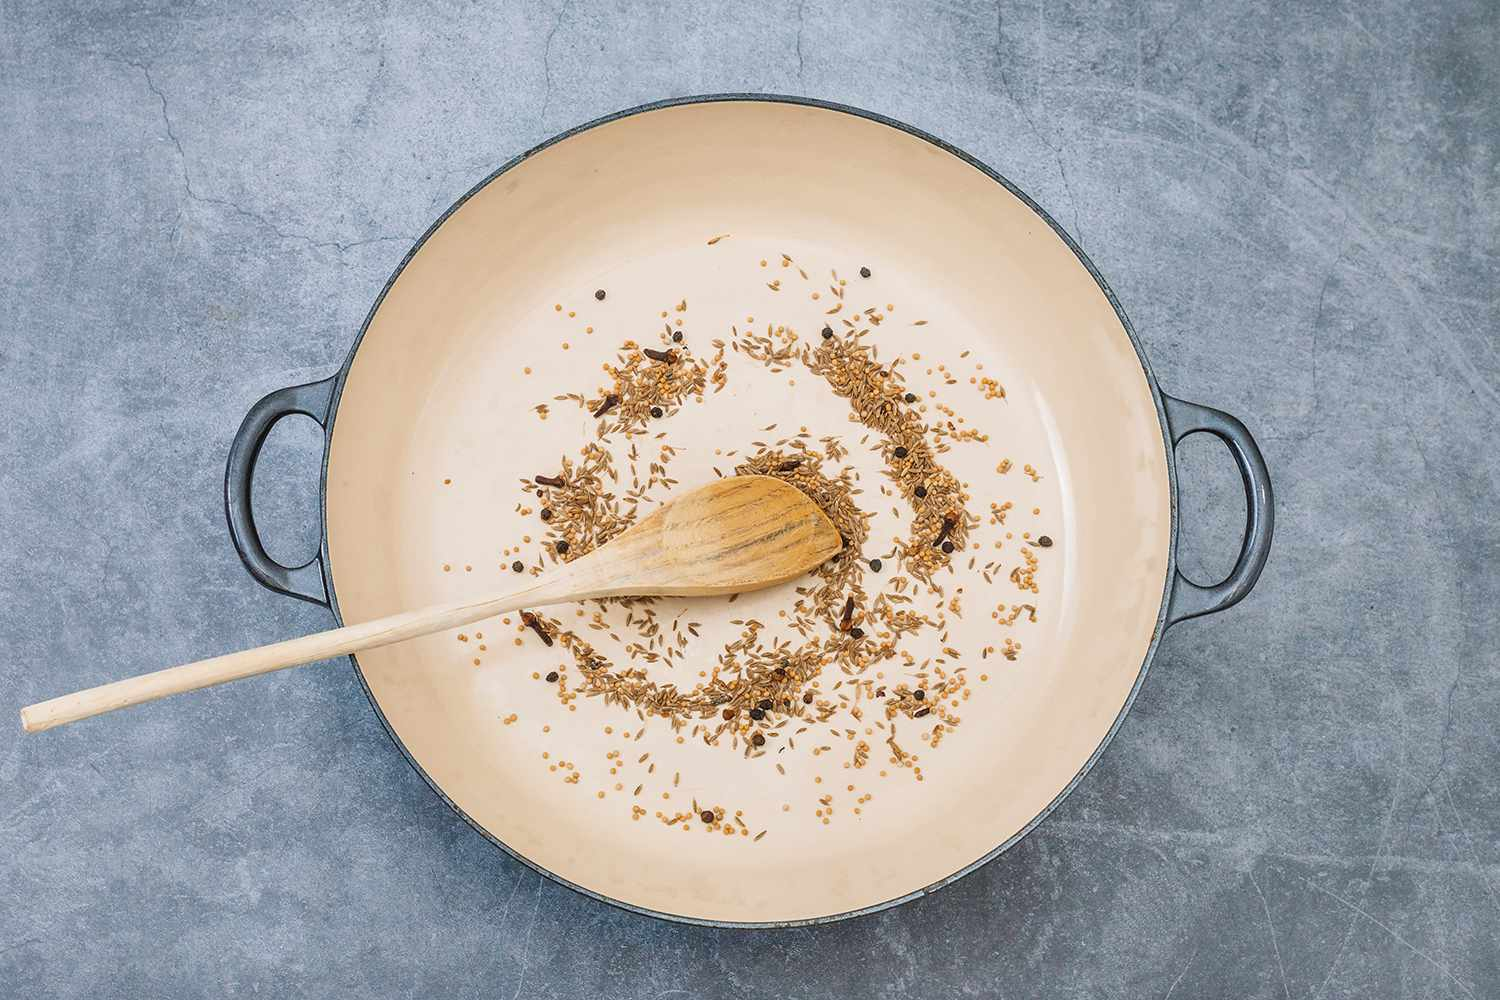 add the cumin seeds, mustard seeds, peppercorn, cardamom seeds, and cloves to a skillet